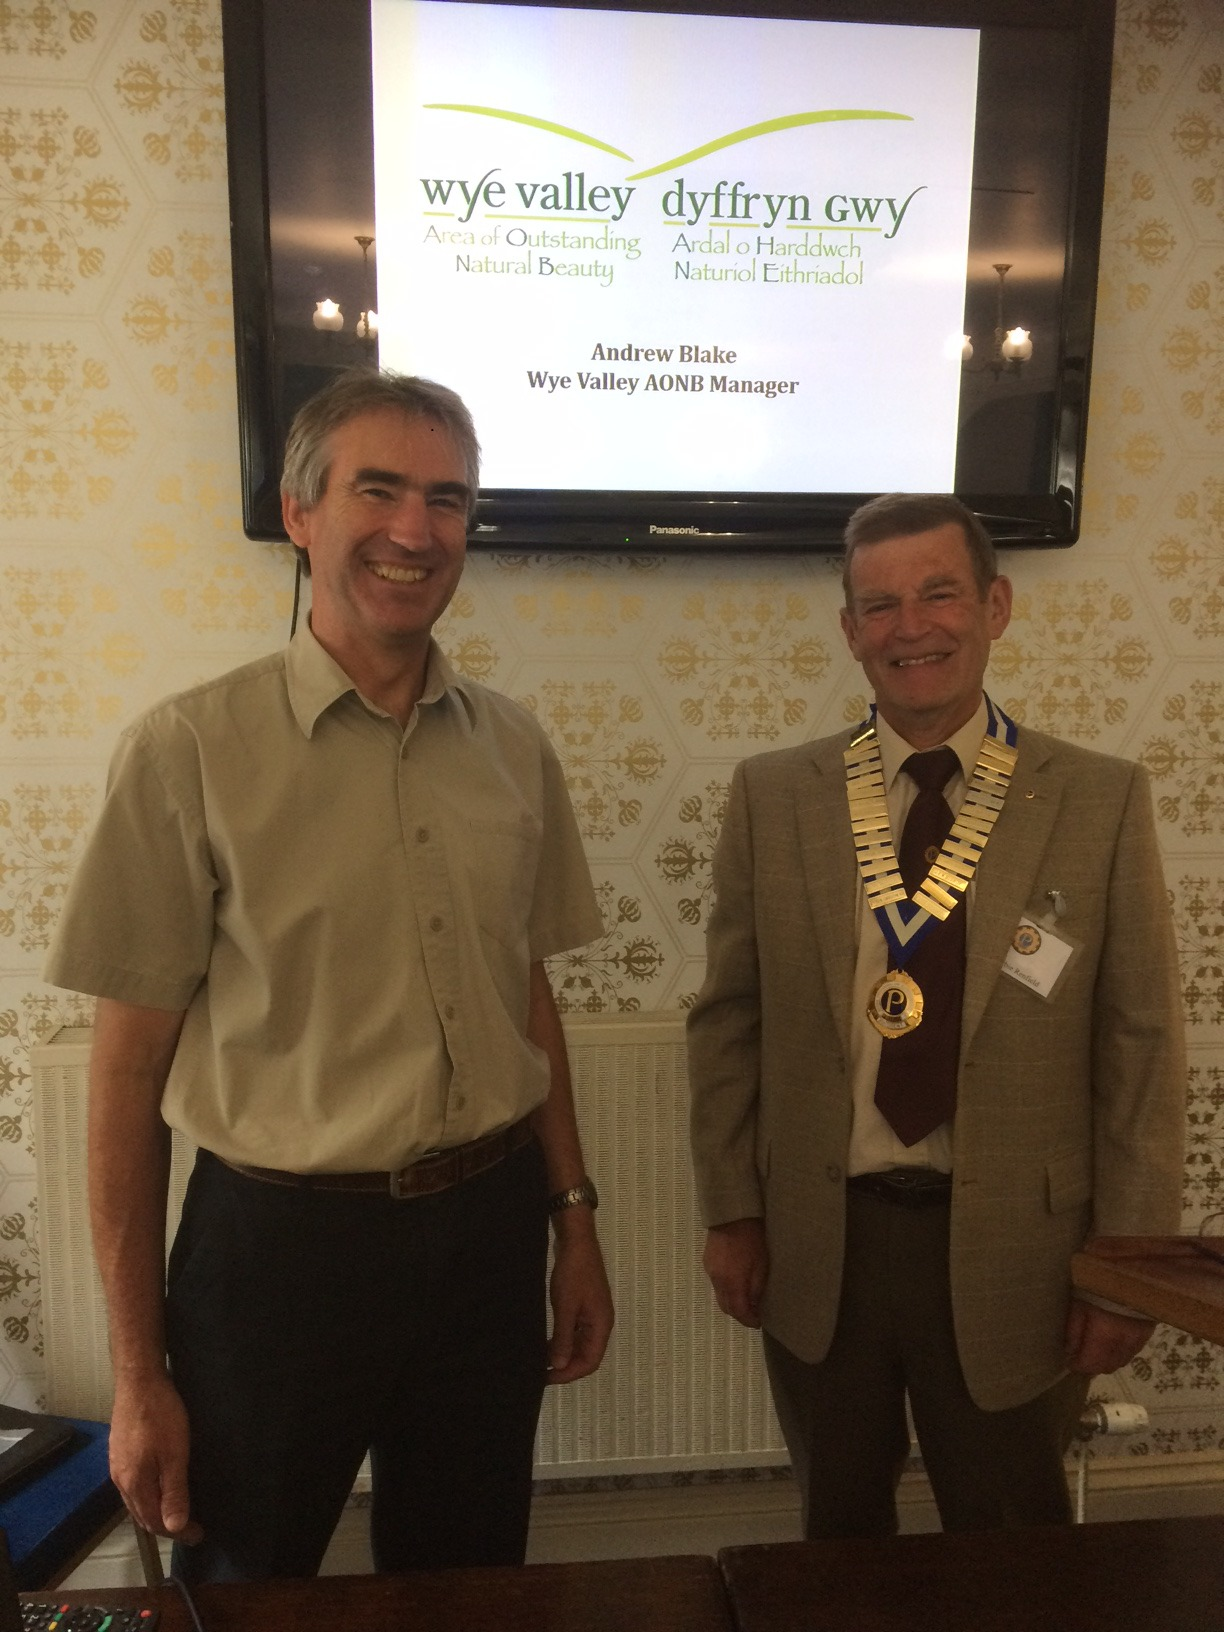 Andrew Blake with Herbie Renfield, president of Ross-on-Wye Vaga Probus Club